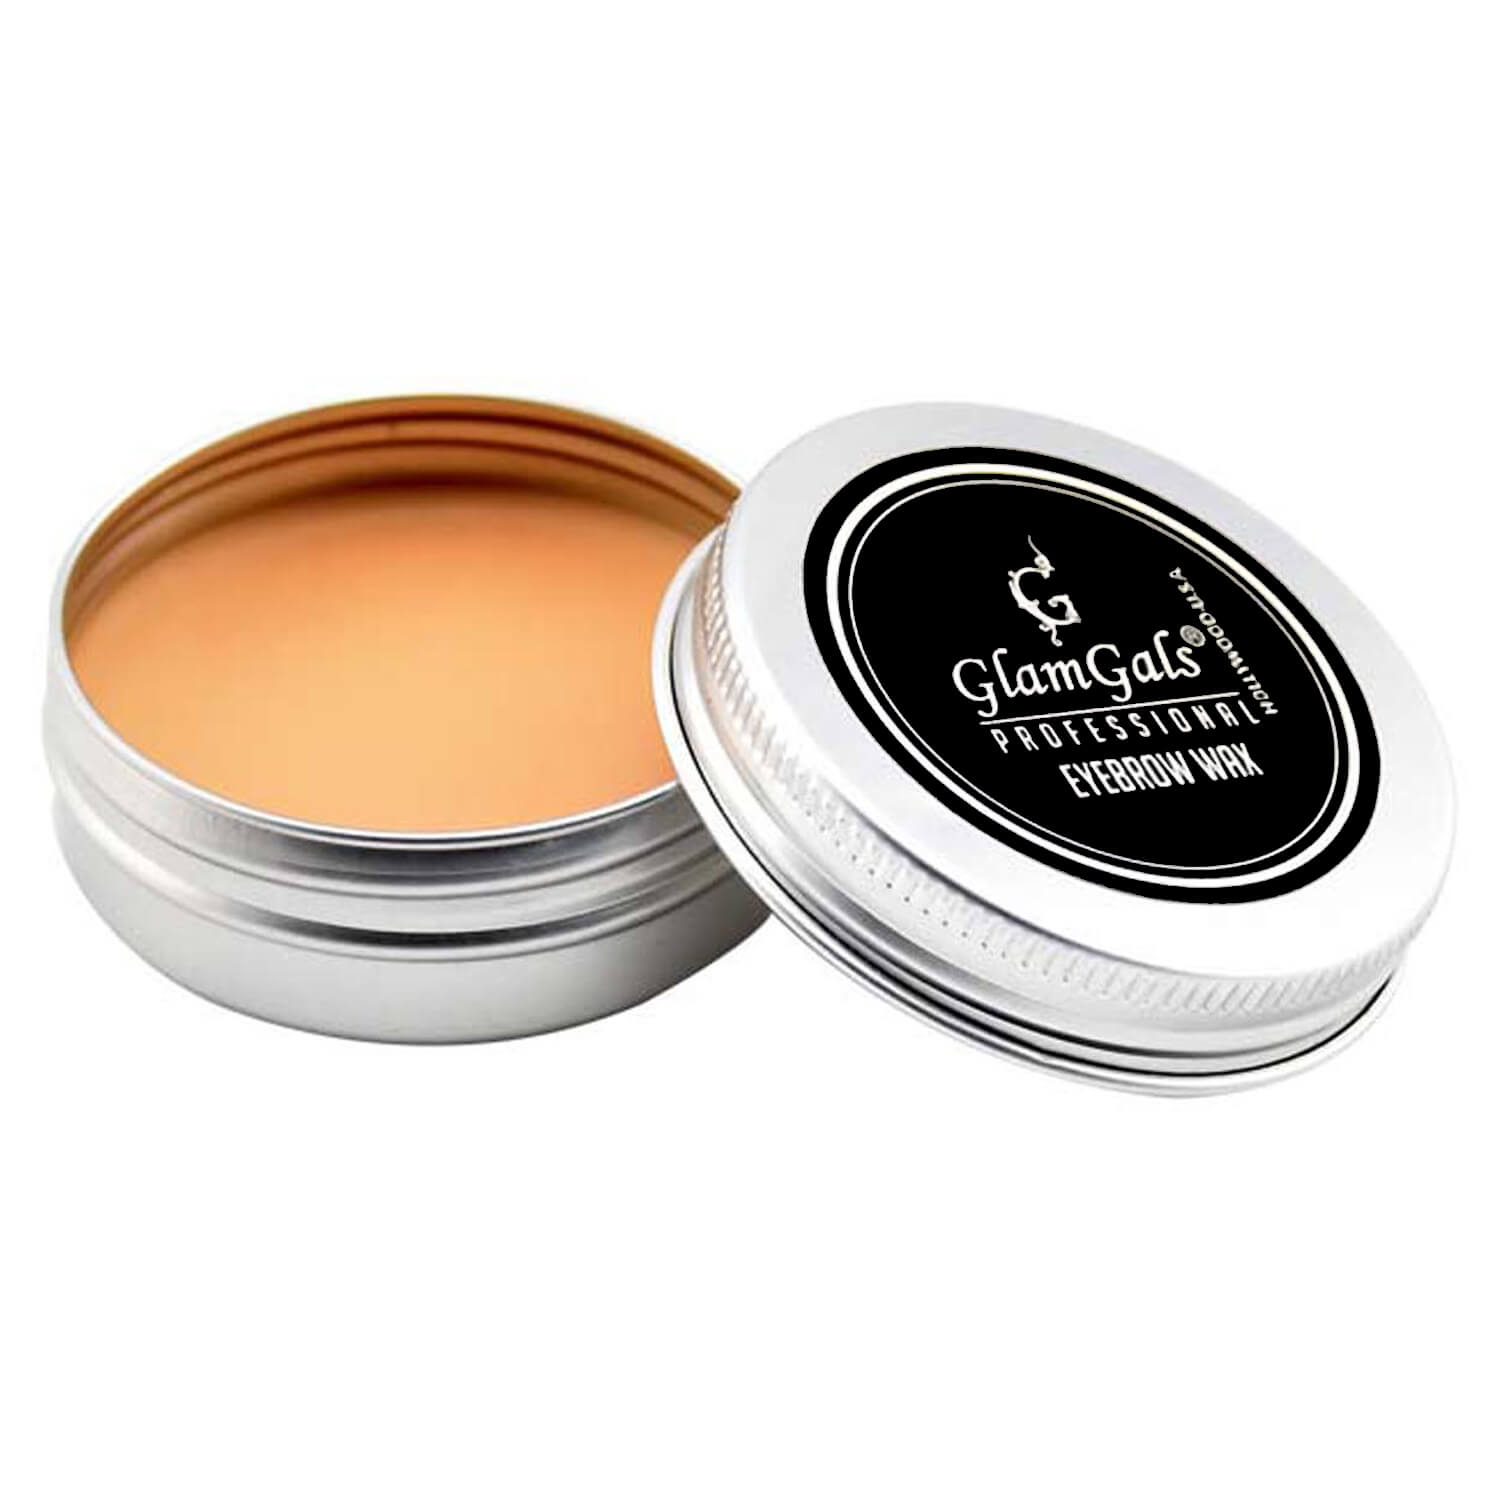 GlamGals Eyebrow Wax